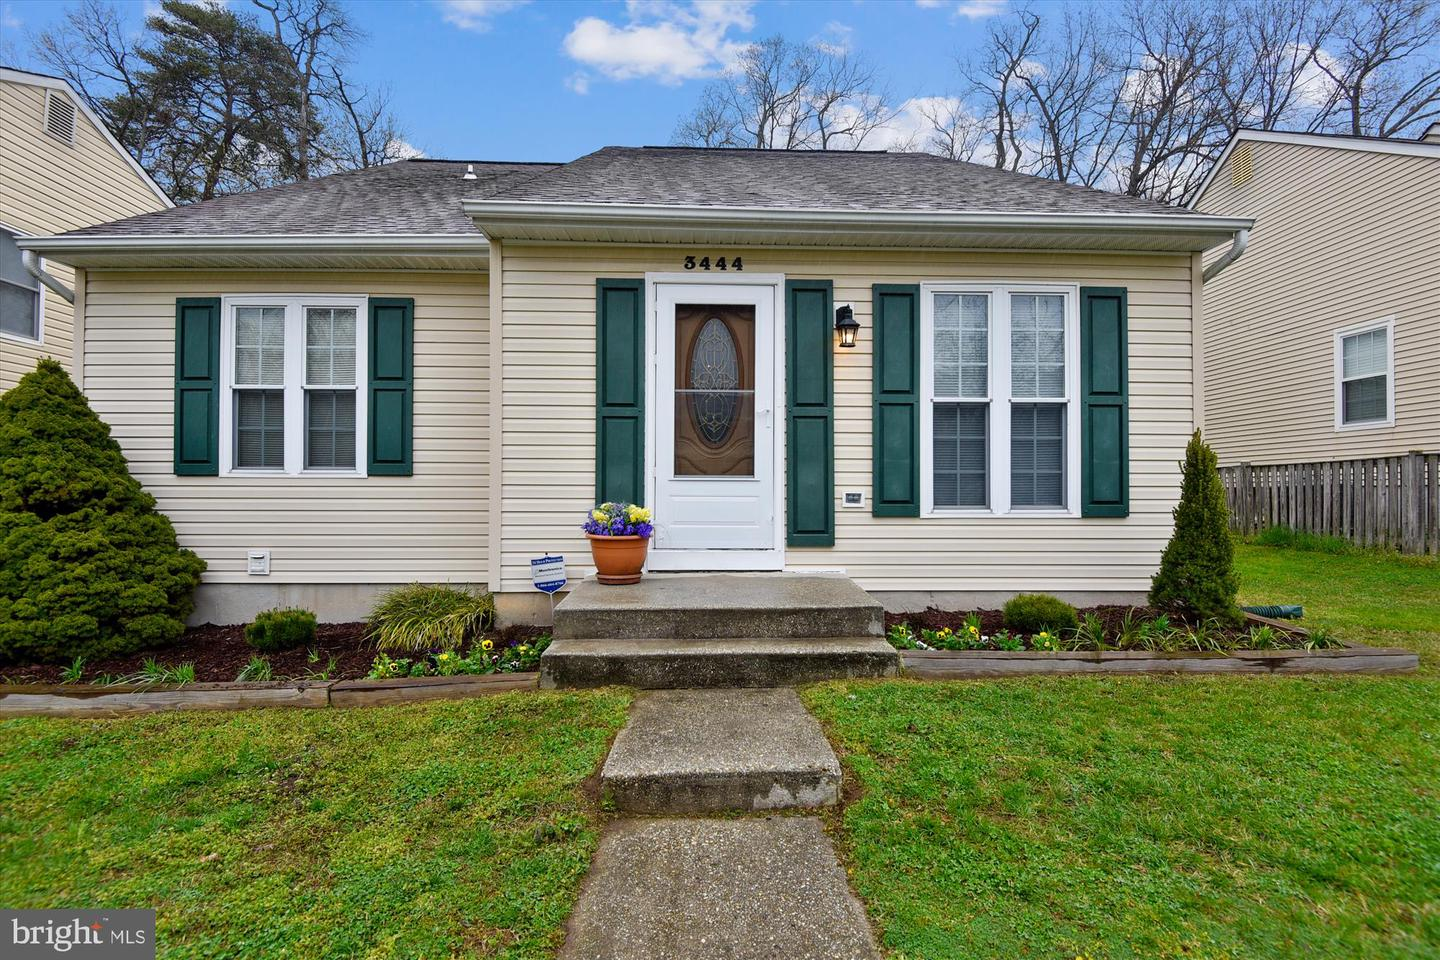 3444 BROOKHAVEN RD, PASADENA, Maryland 21122, 4 Bedrooms Bedrooms, ,3 BathroomsBathrooms,Single Family,For Sale,3444 BROOKHAVEN RD,MDAA462910